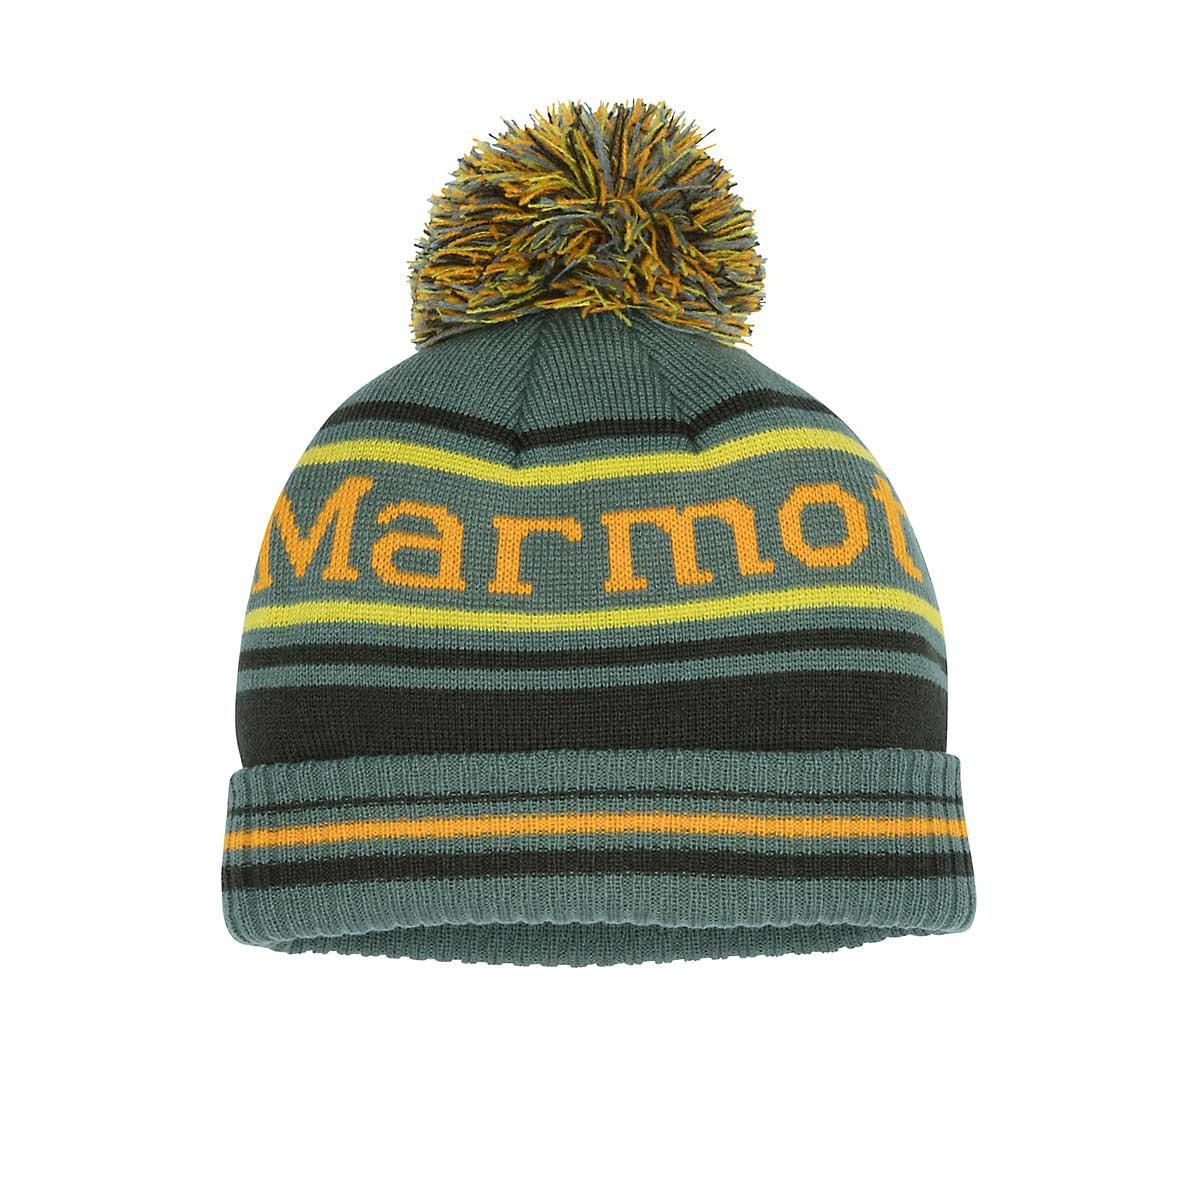 Marmot Boys' Retro Pom Hat in Crocodile and Rosin Green